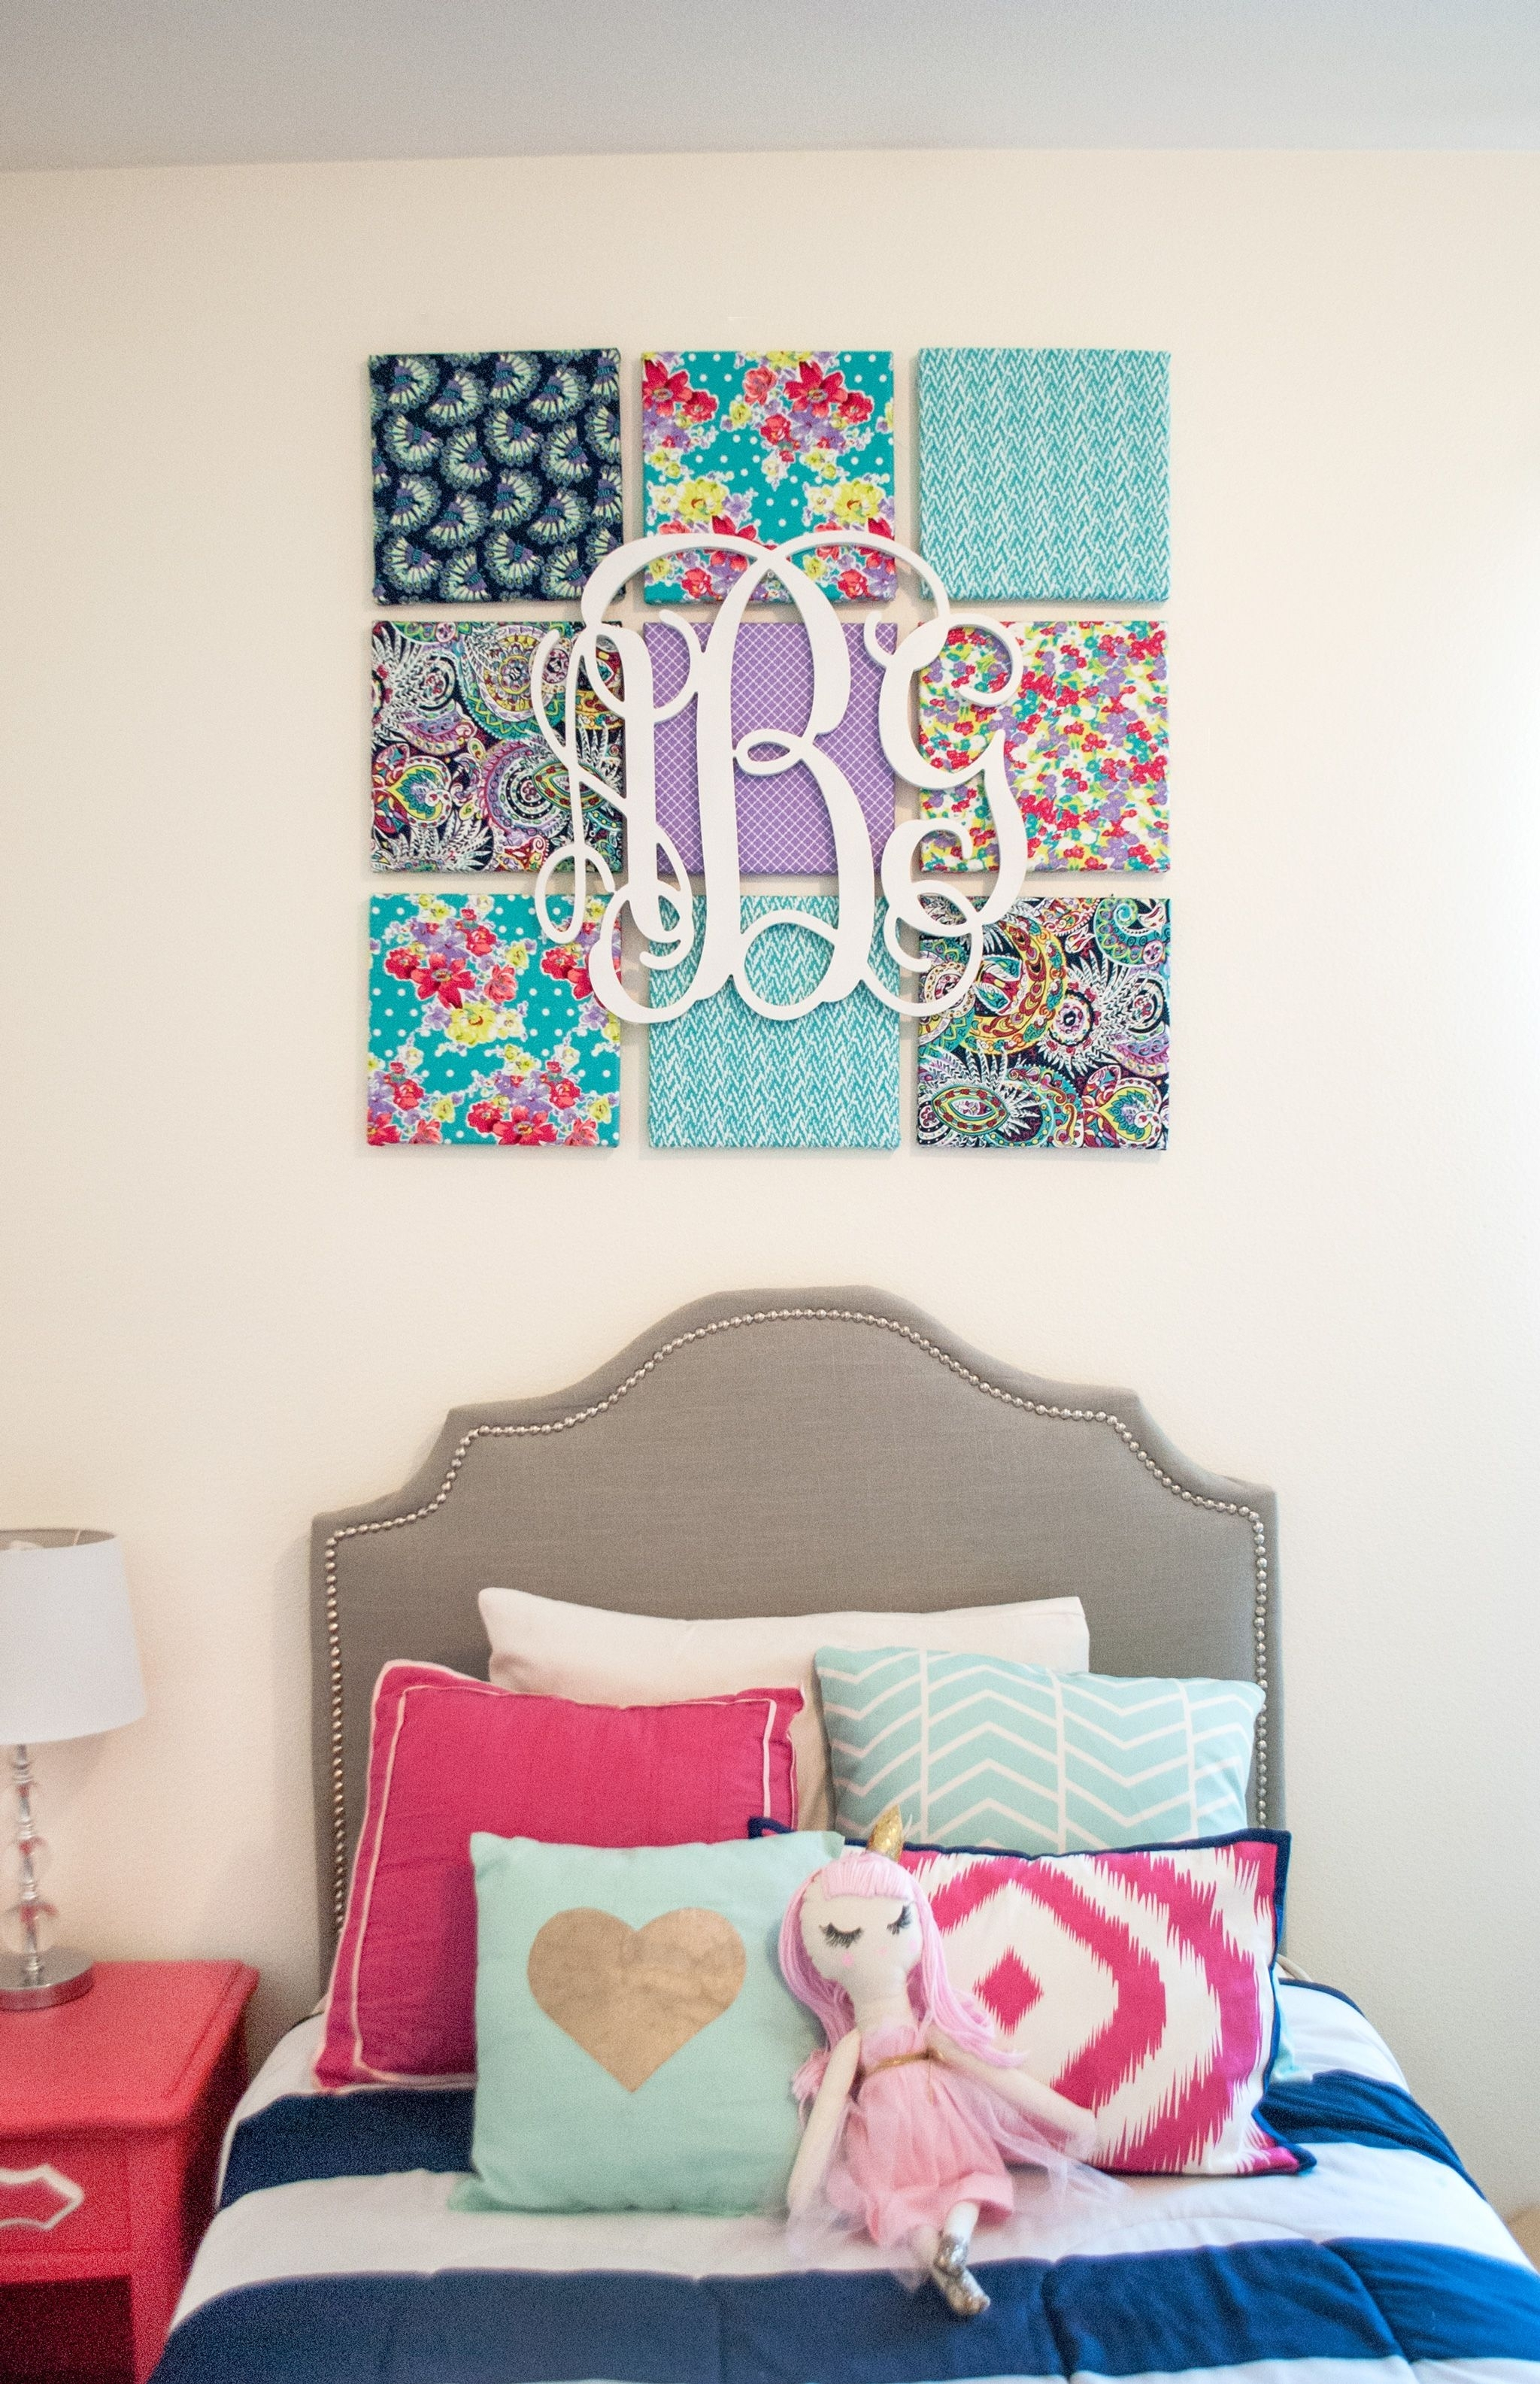 Diy Fabric Wall Art | Monogram Wall, Kids Rooms And Monograms within Recent Diy Fabric Canvas Wall Art